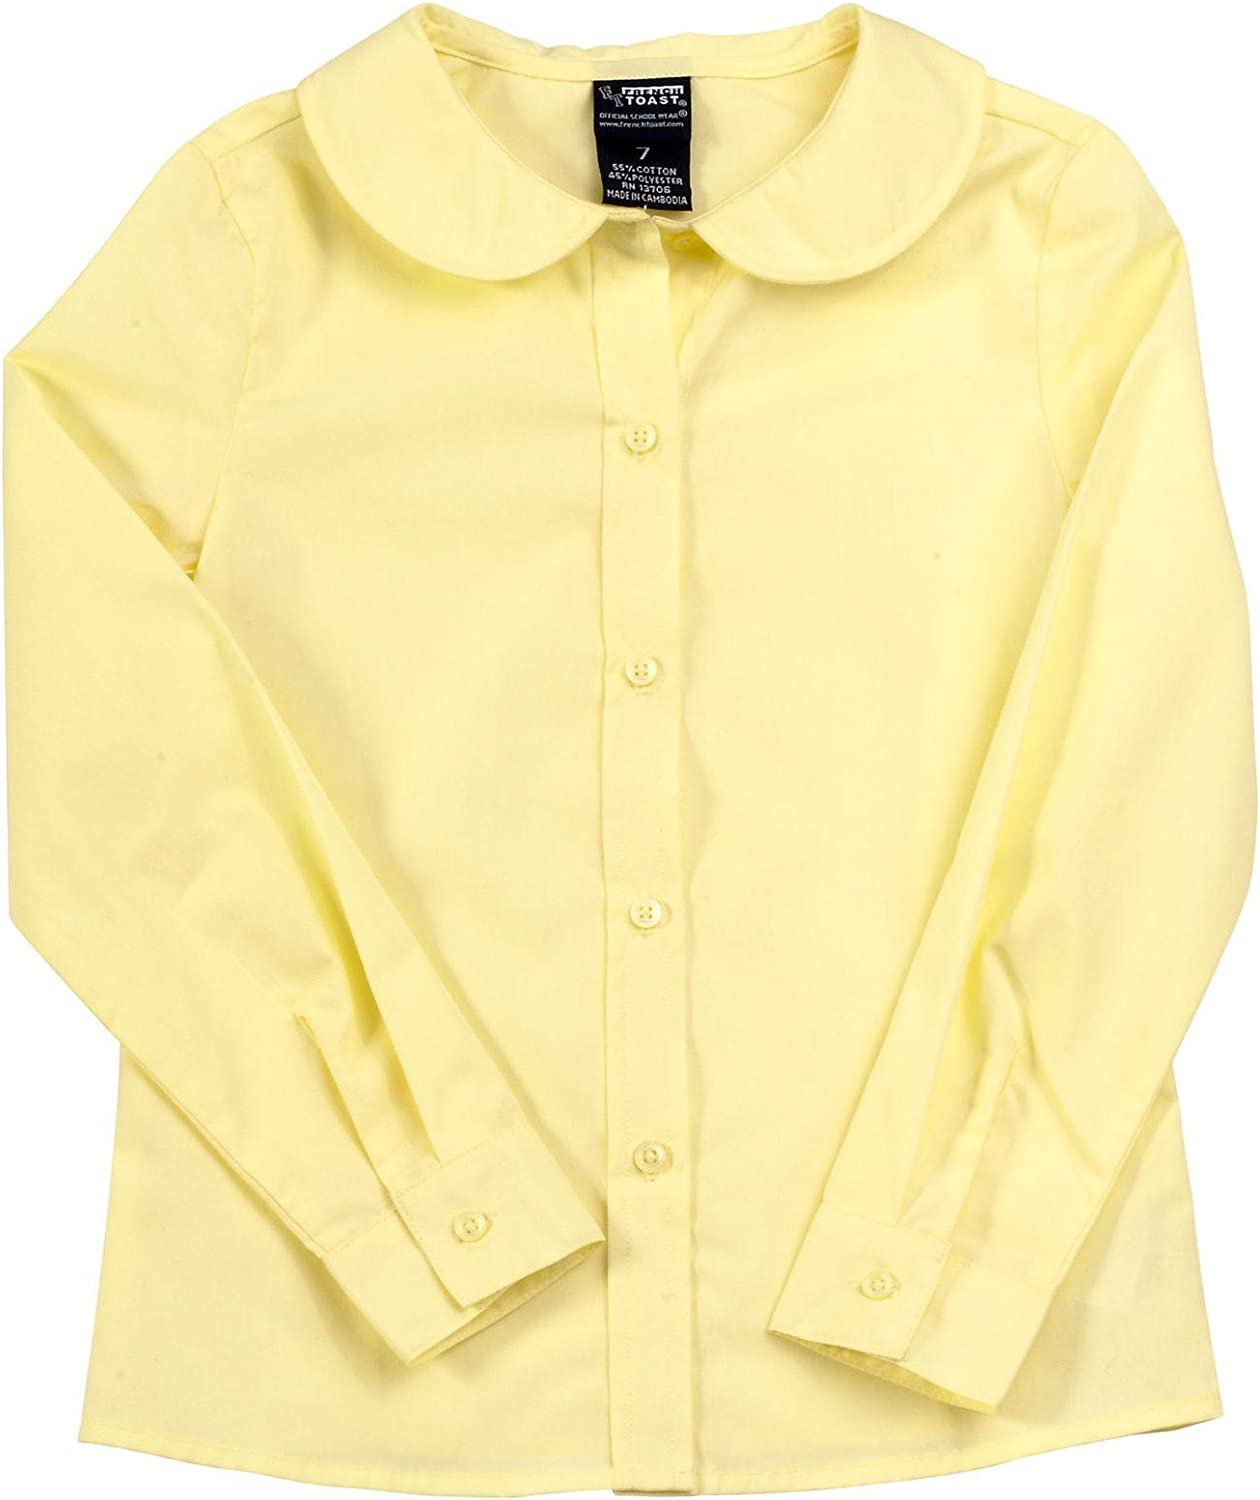 20 Yellow French Toast Girls Long-Sleeve Peter Pan Blouse